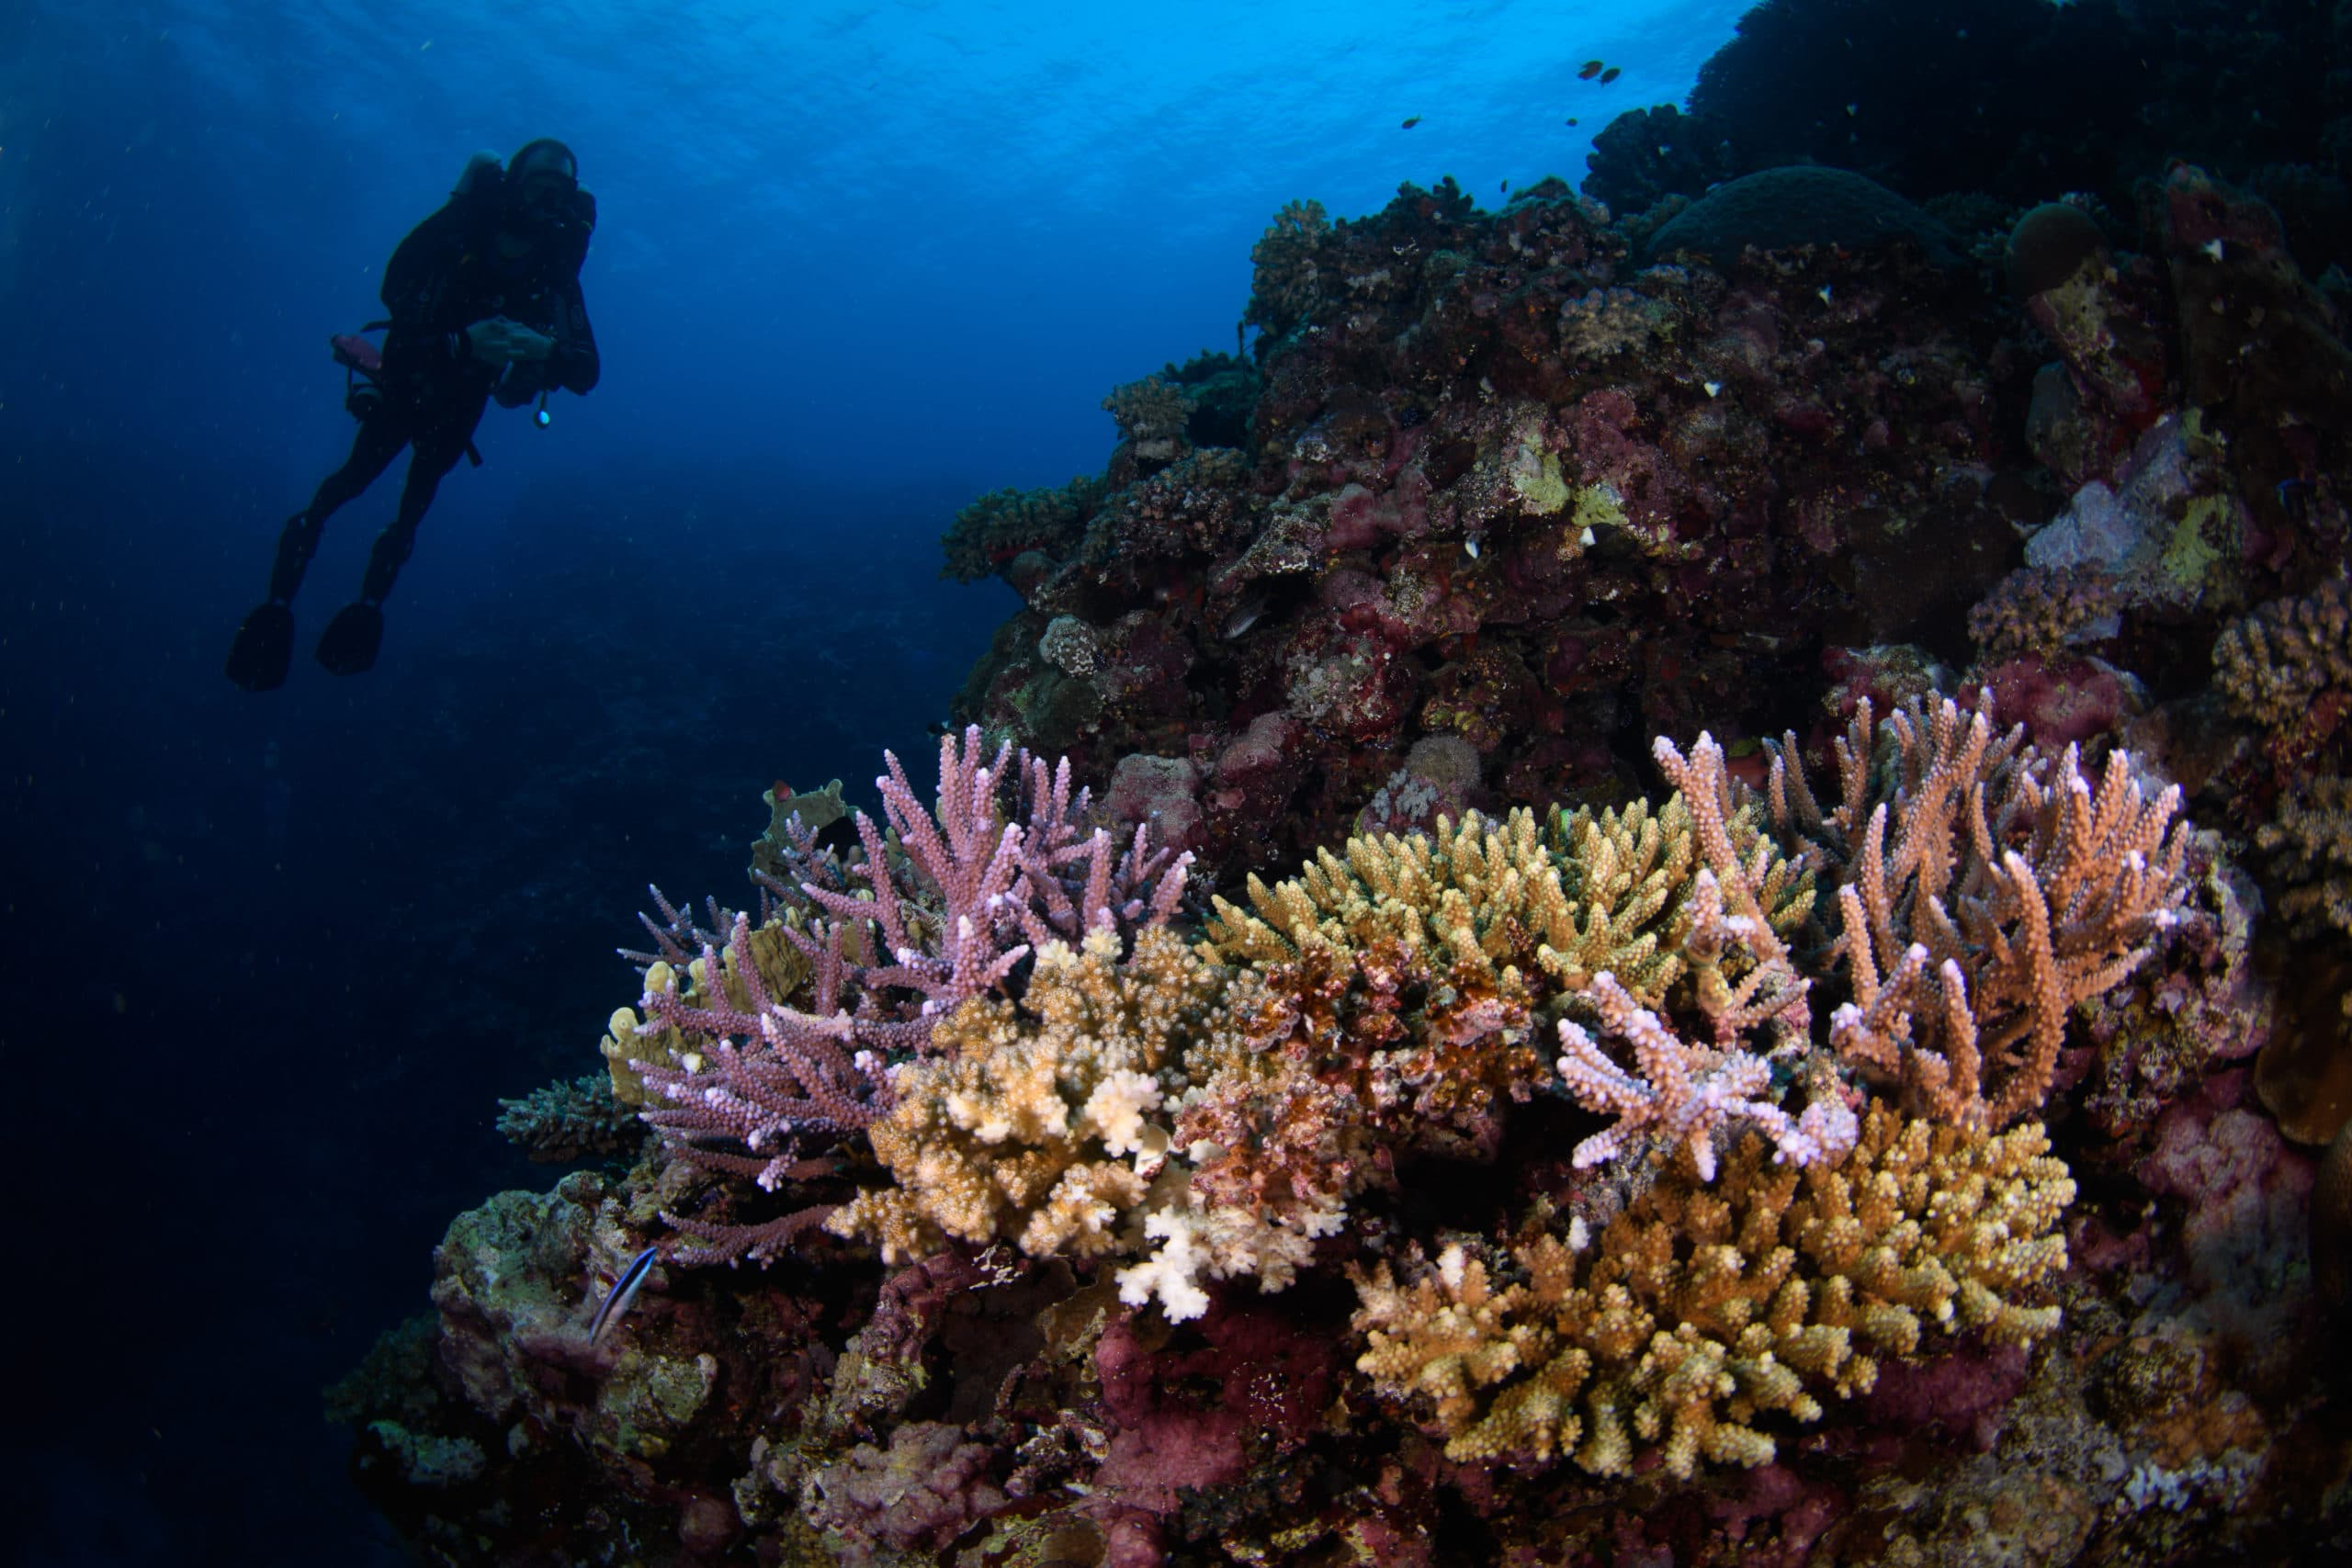 lively and colorful reefs